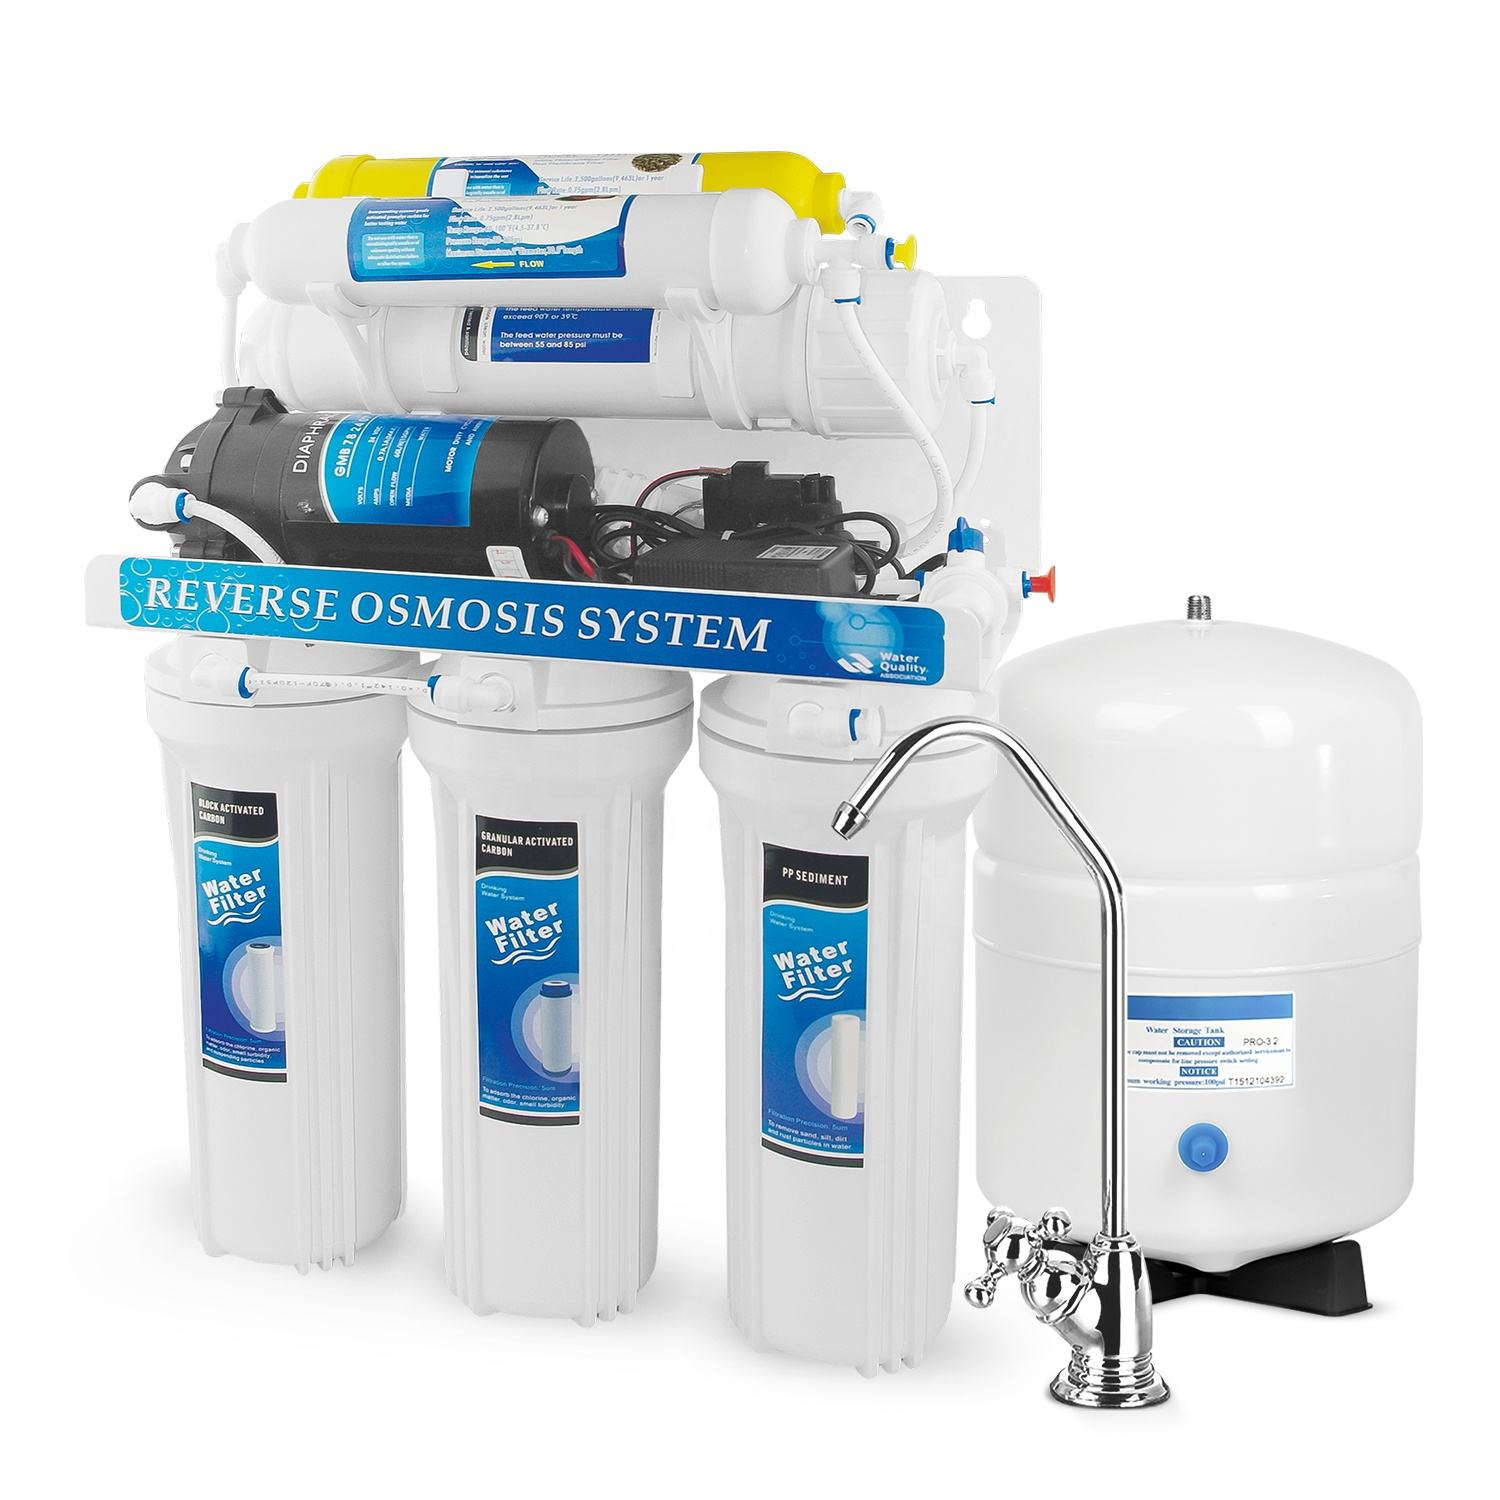 Undersink hidrotek domestic reverse osmosis water purifier machine with 6 stage